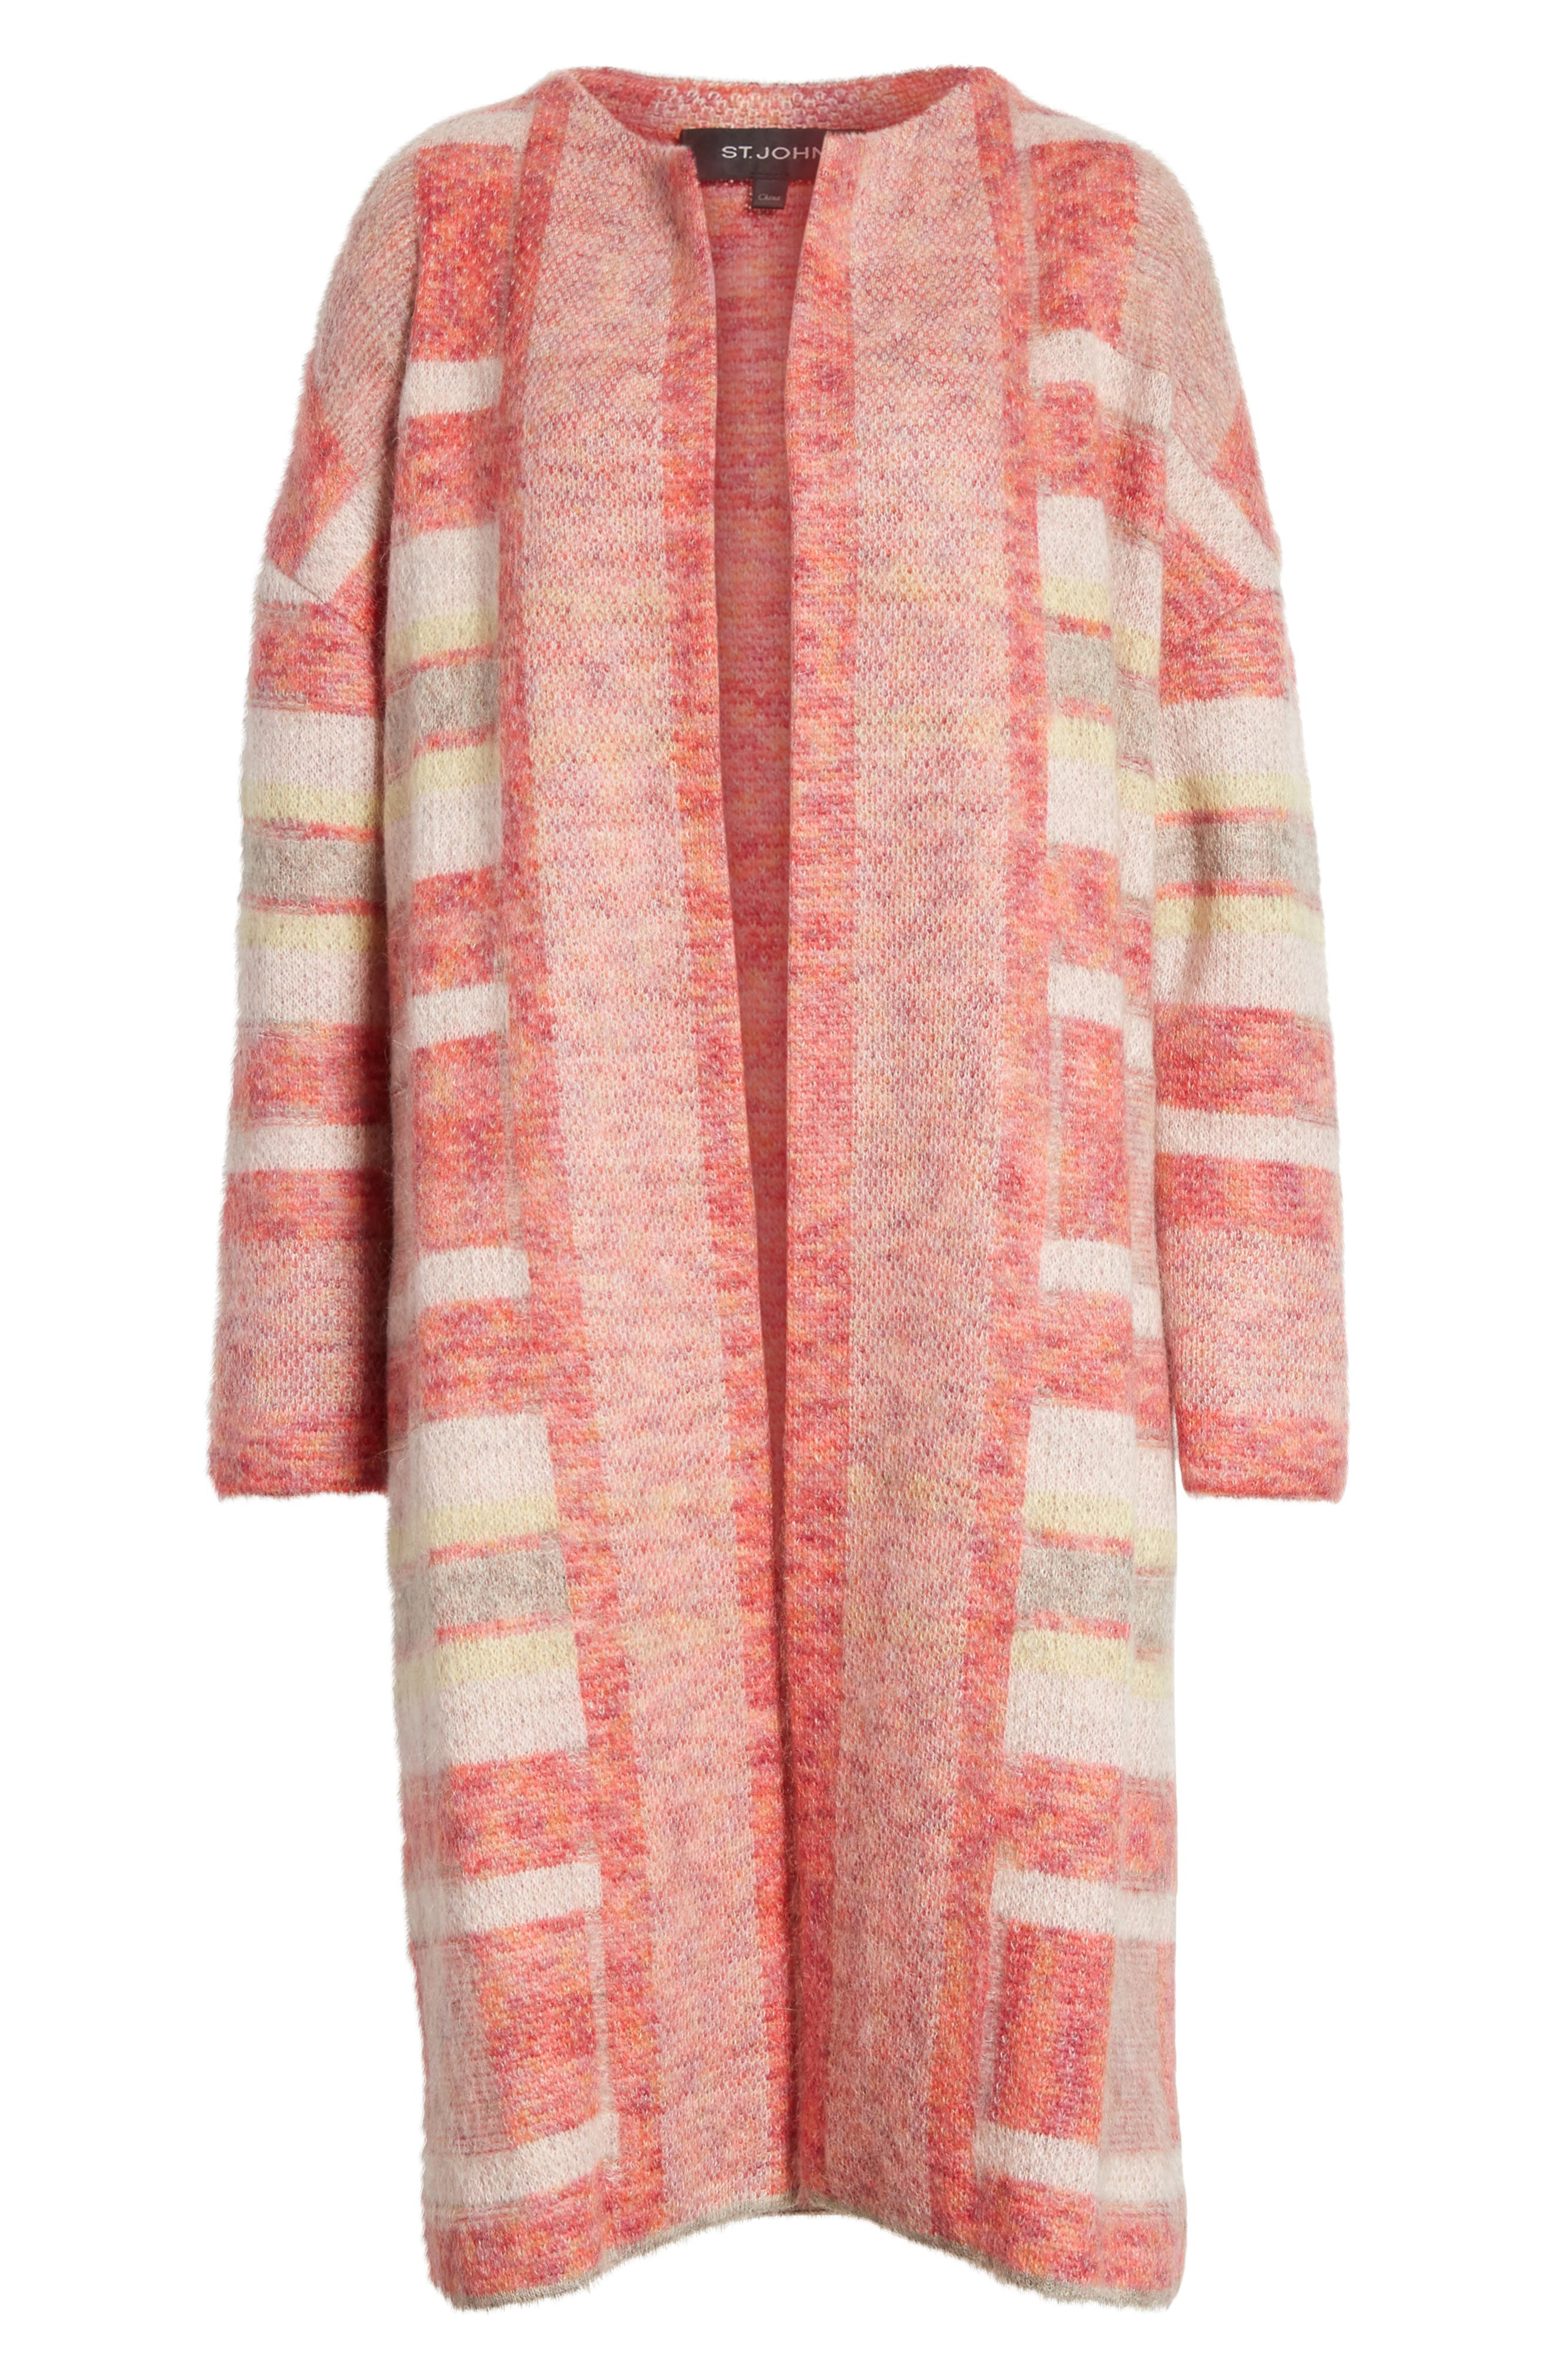 Lofty Knit Plaid Blanket Coat,                             Alternate thumbnail 7, color,                             Bright Coral Multi